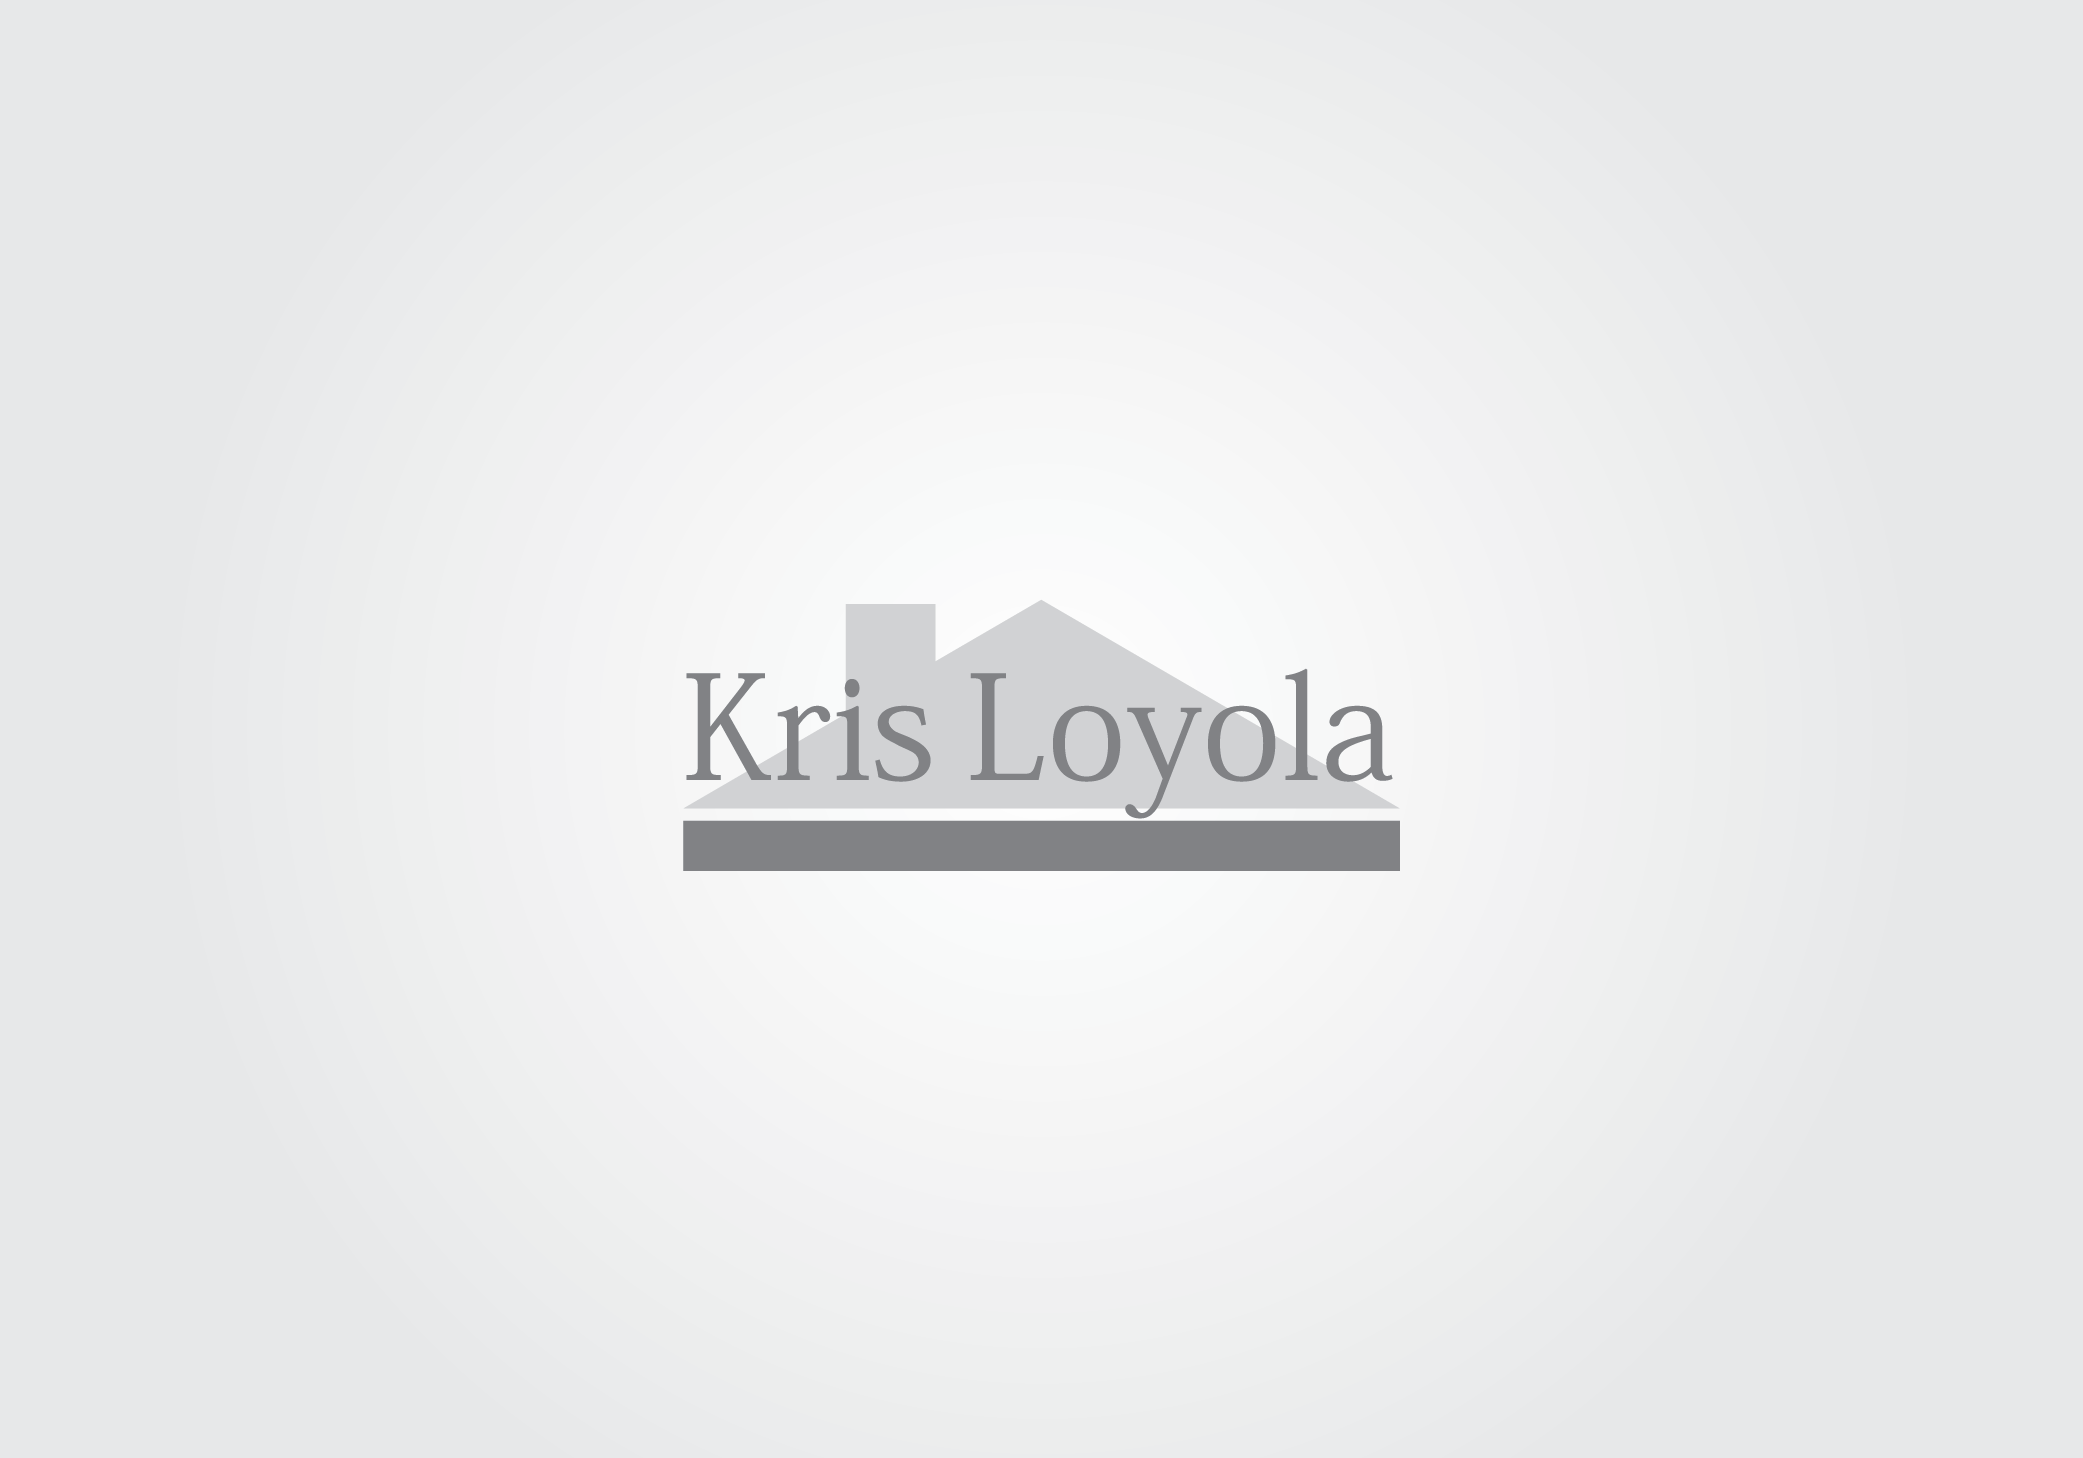 Logo Design by Private User - Entry No. 14 in the Logo Design Contest Kris Loyola Logo Design.